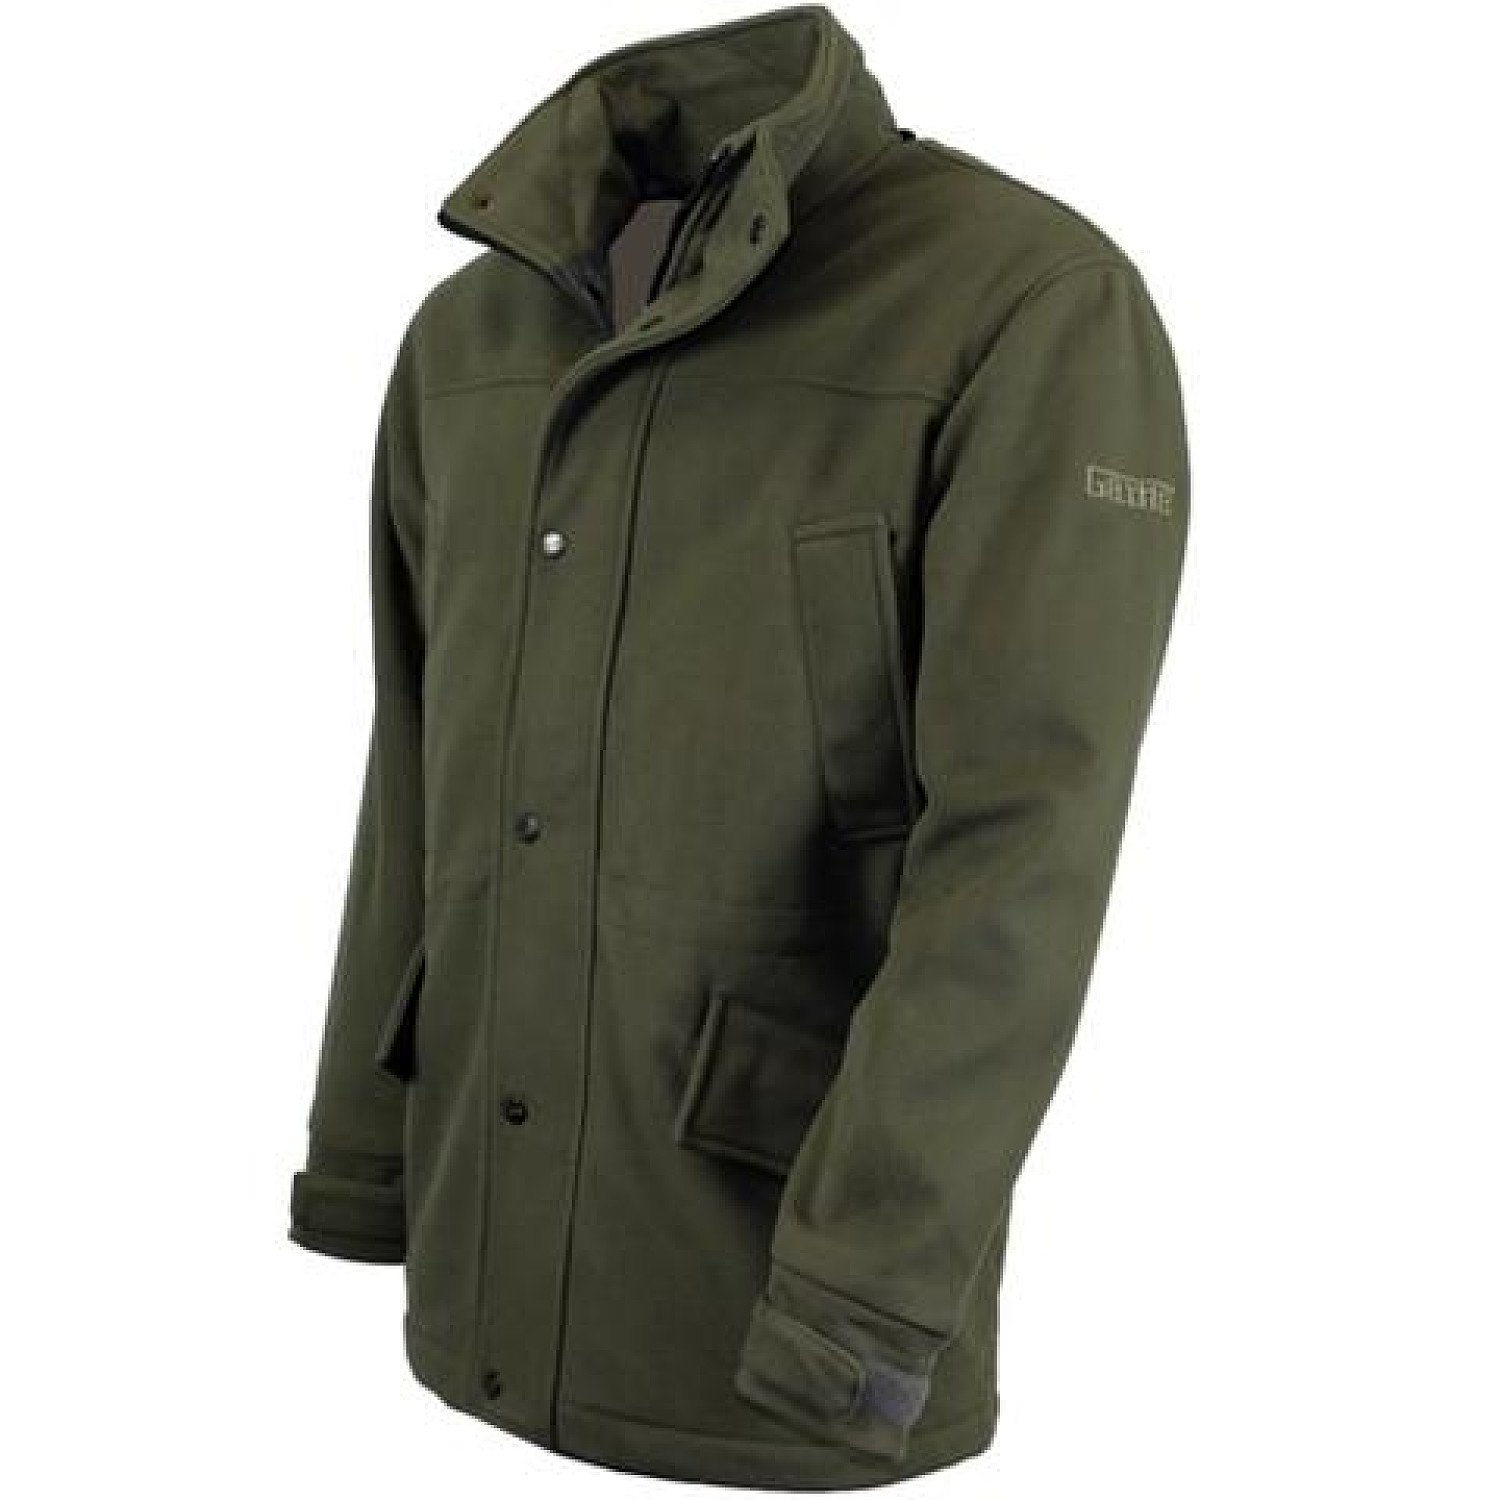 Game HB275 Trekker Jacket